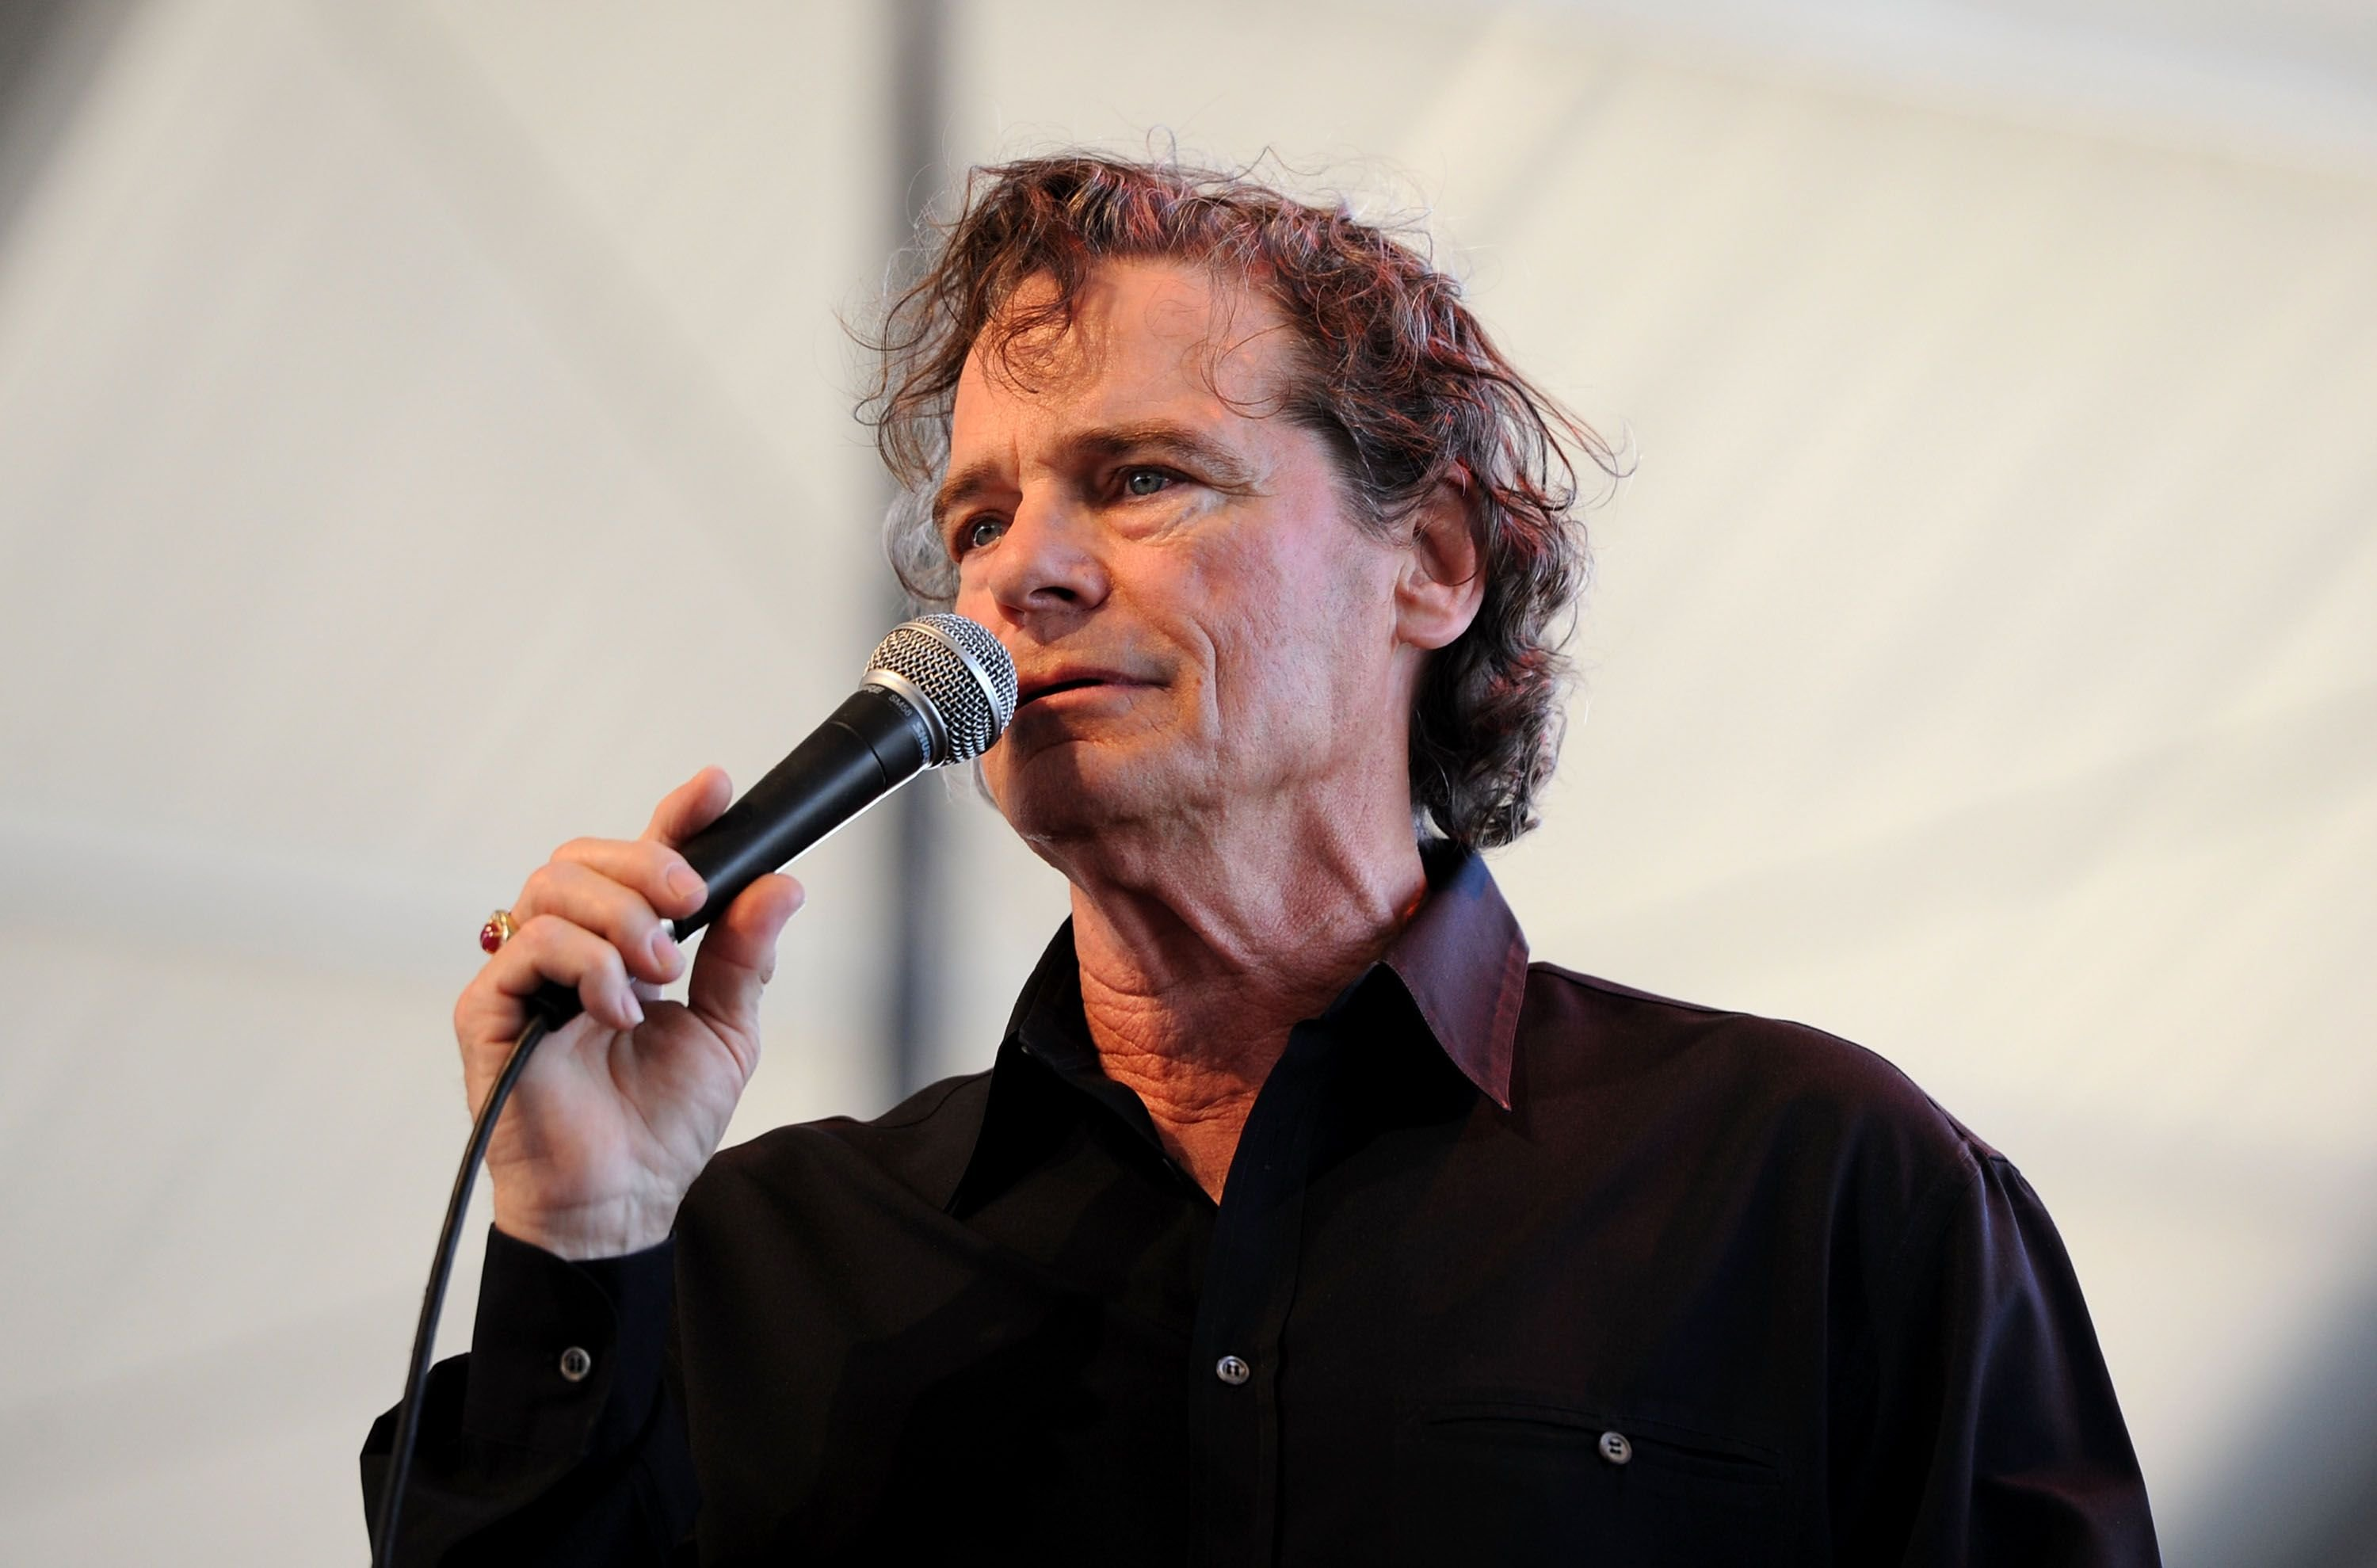 Singer B.J. Thomas performing at the 2010 Stagecoach Music Festival at the Empire Polo Club in Indio, California | Photo: Frazer Harrison/Getty Images